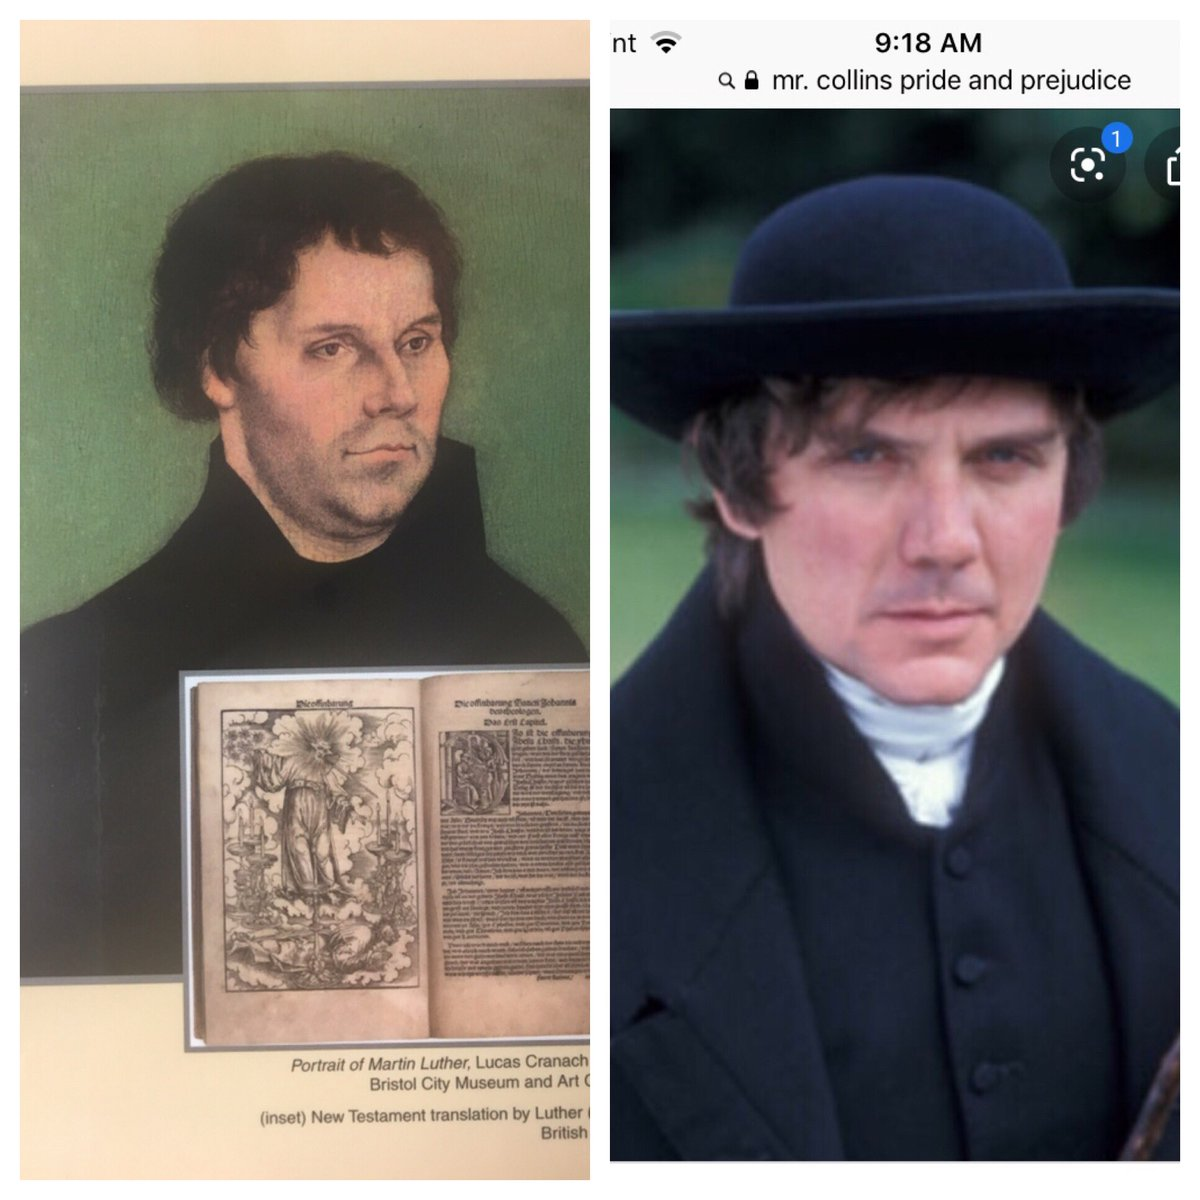 When I look at this picture of Martin Luther, I can't help but think of Mr. Collins. #homeschooling #PrideandPrejudice #JaneAustenpic.twitter.com/Iy44sdJBo1